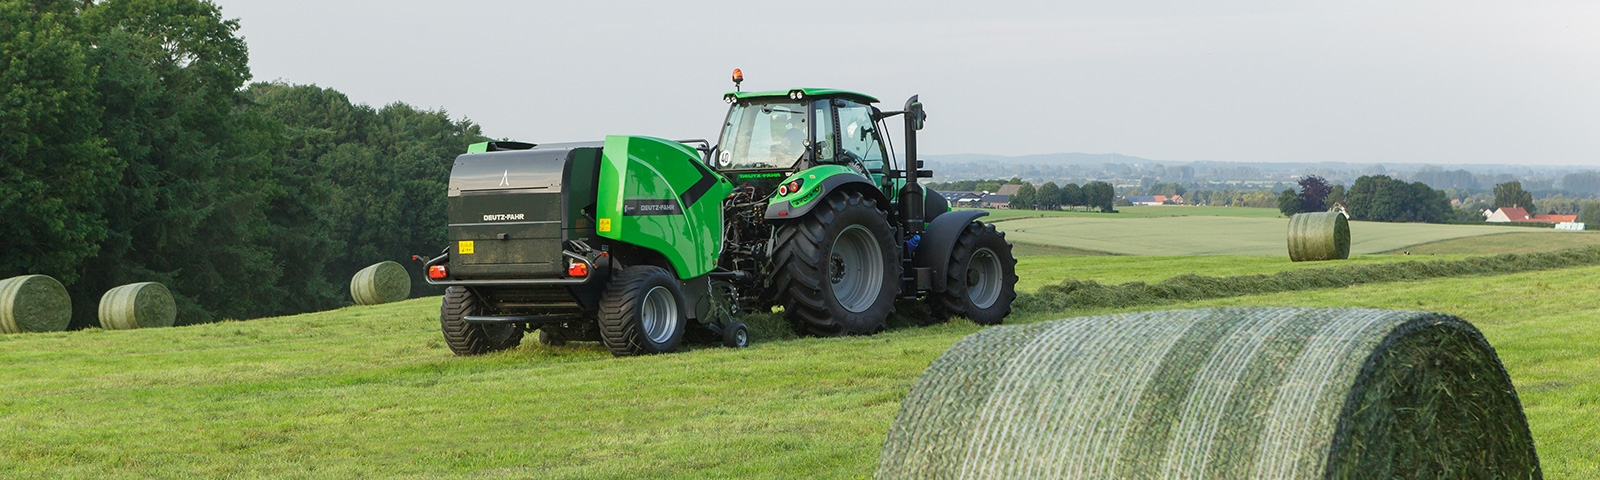 chamber balers forage harvesting deutz fahr rh deutz fahr com Deutz Repair Manual Deutz -Fahr Manual